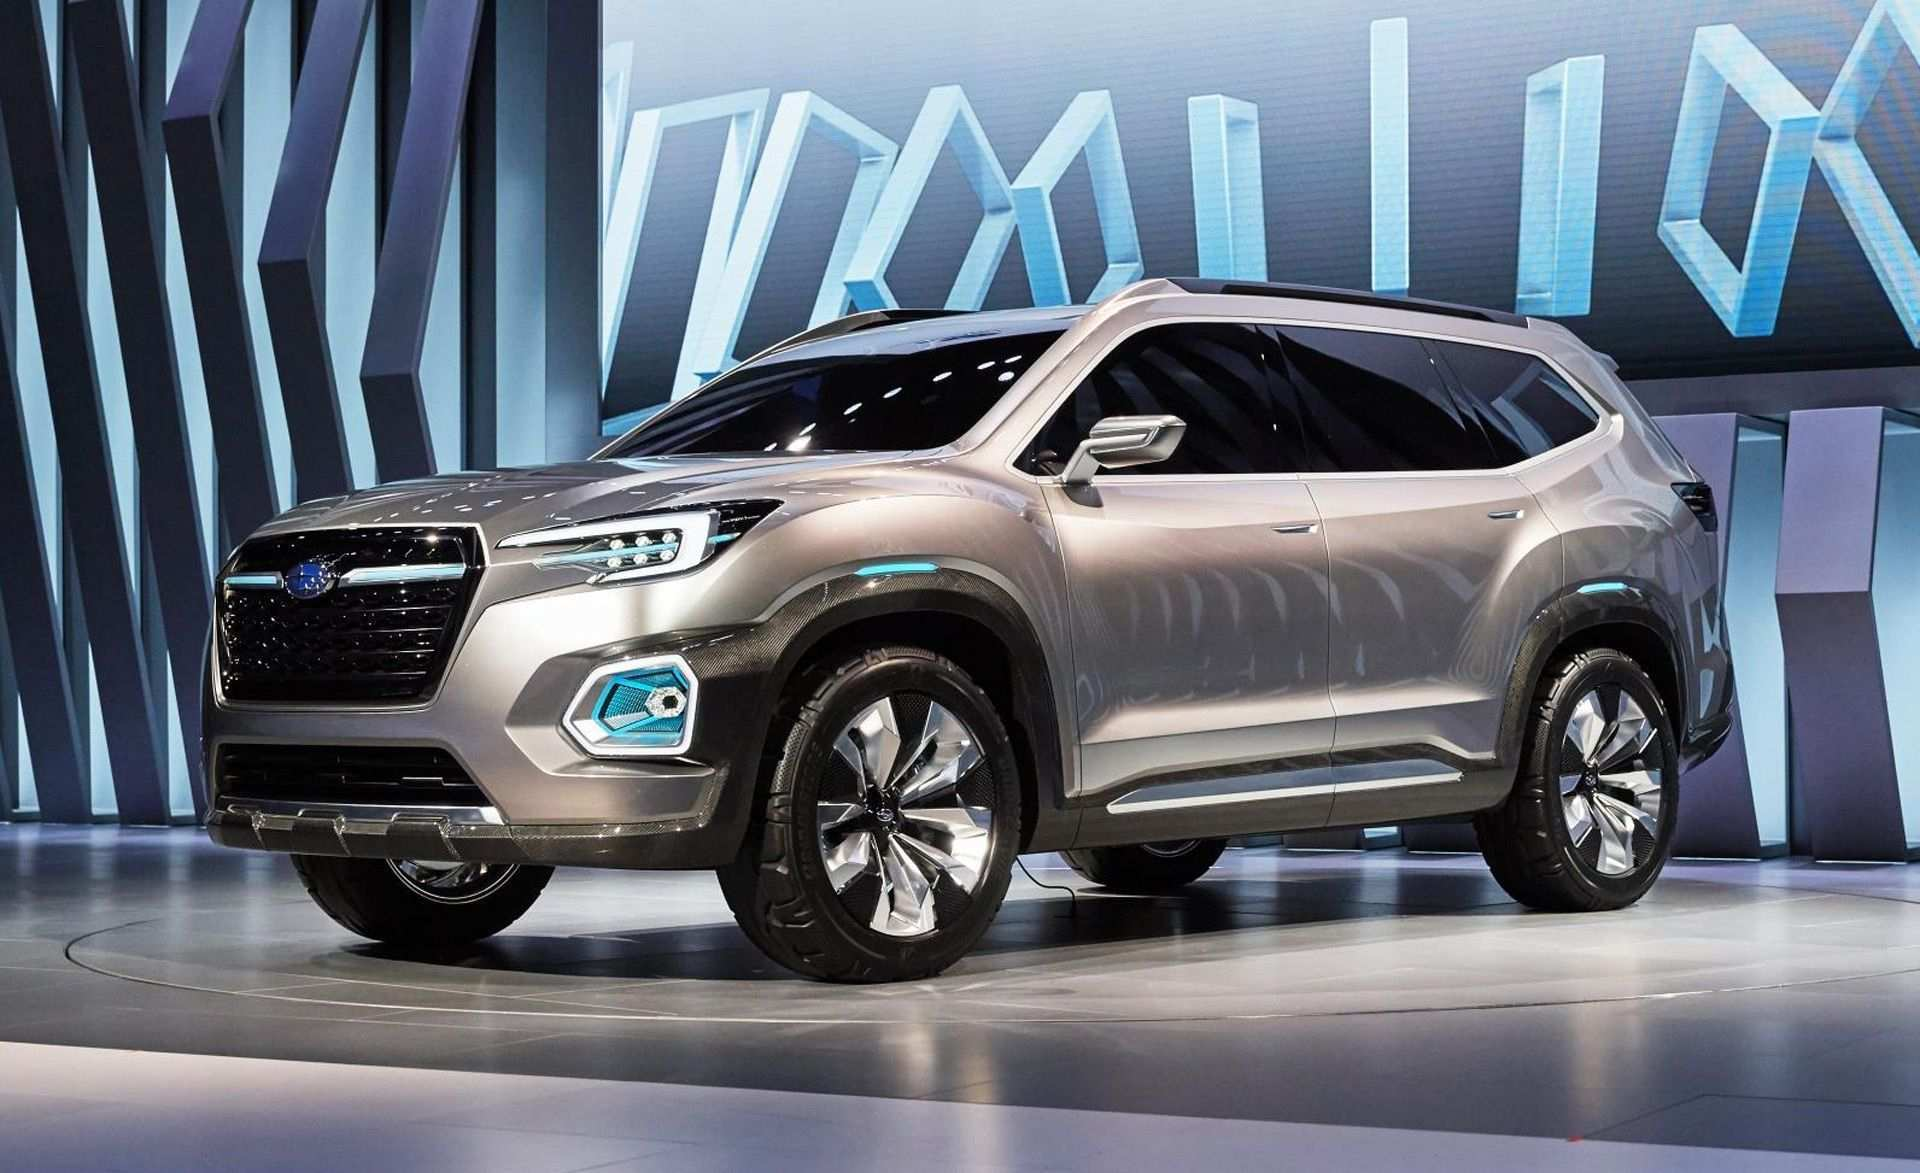 65 The 2019 Subaru Viziv Pickup Model